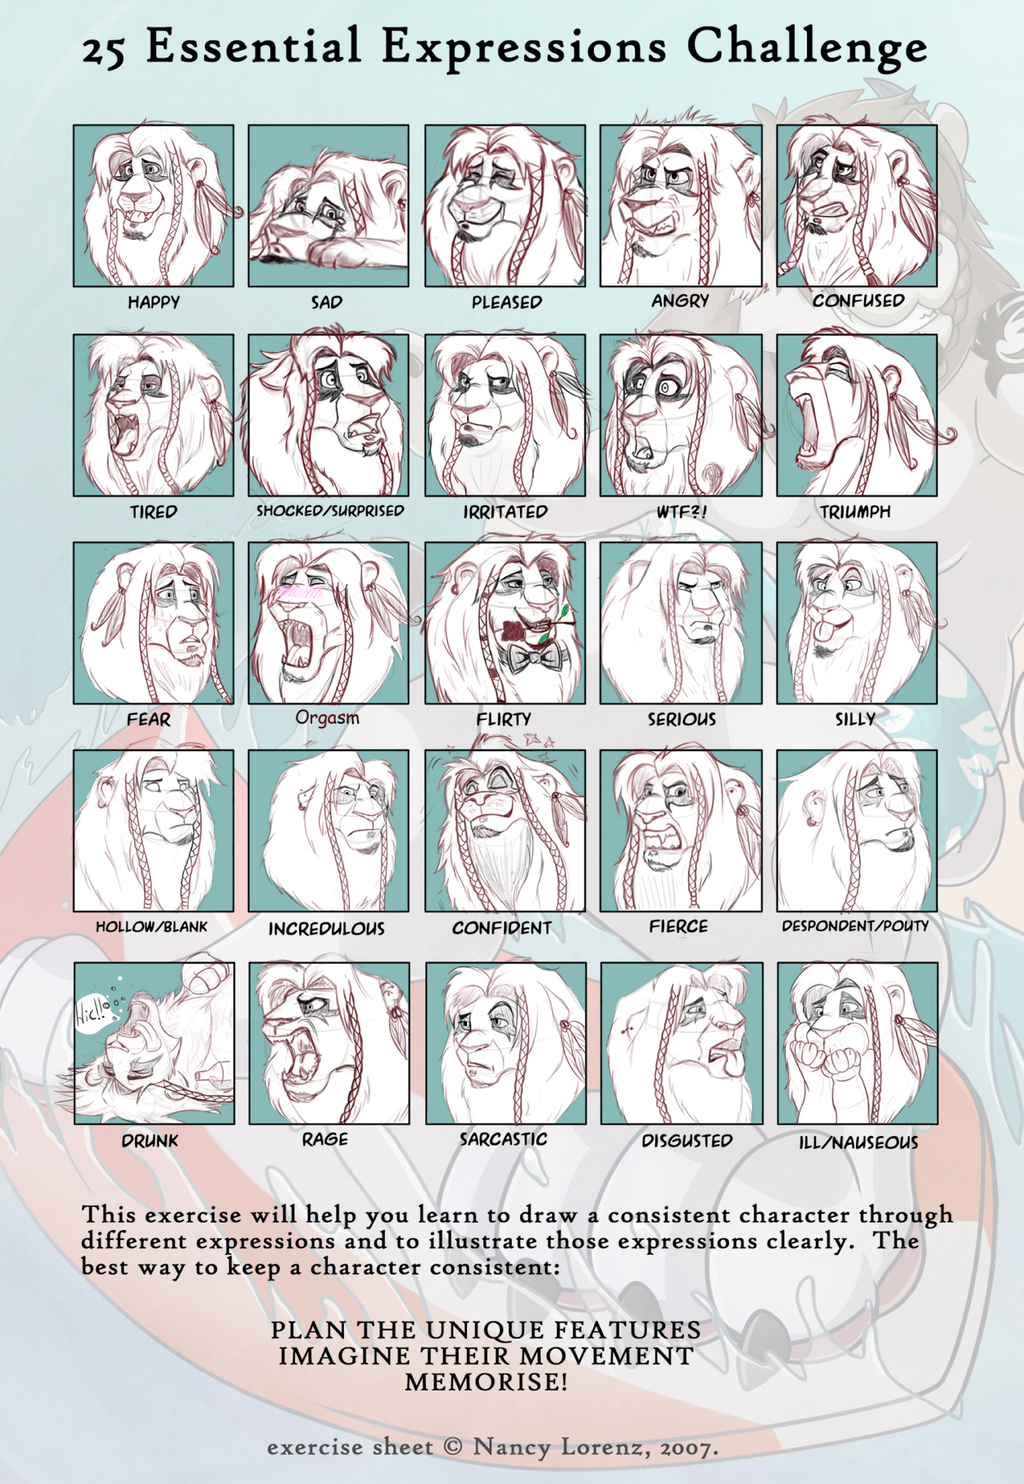 25 Essencitial Expressions Challenge